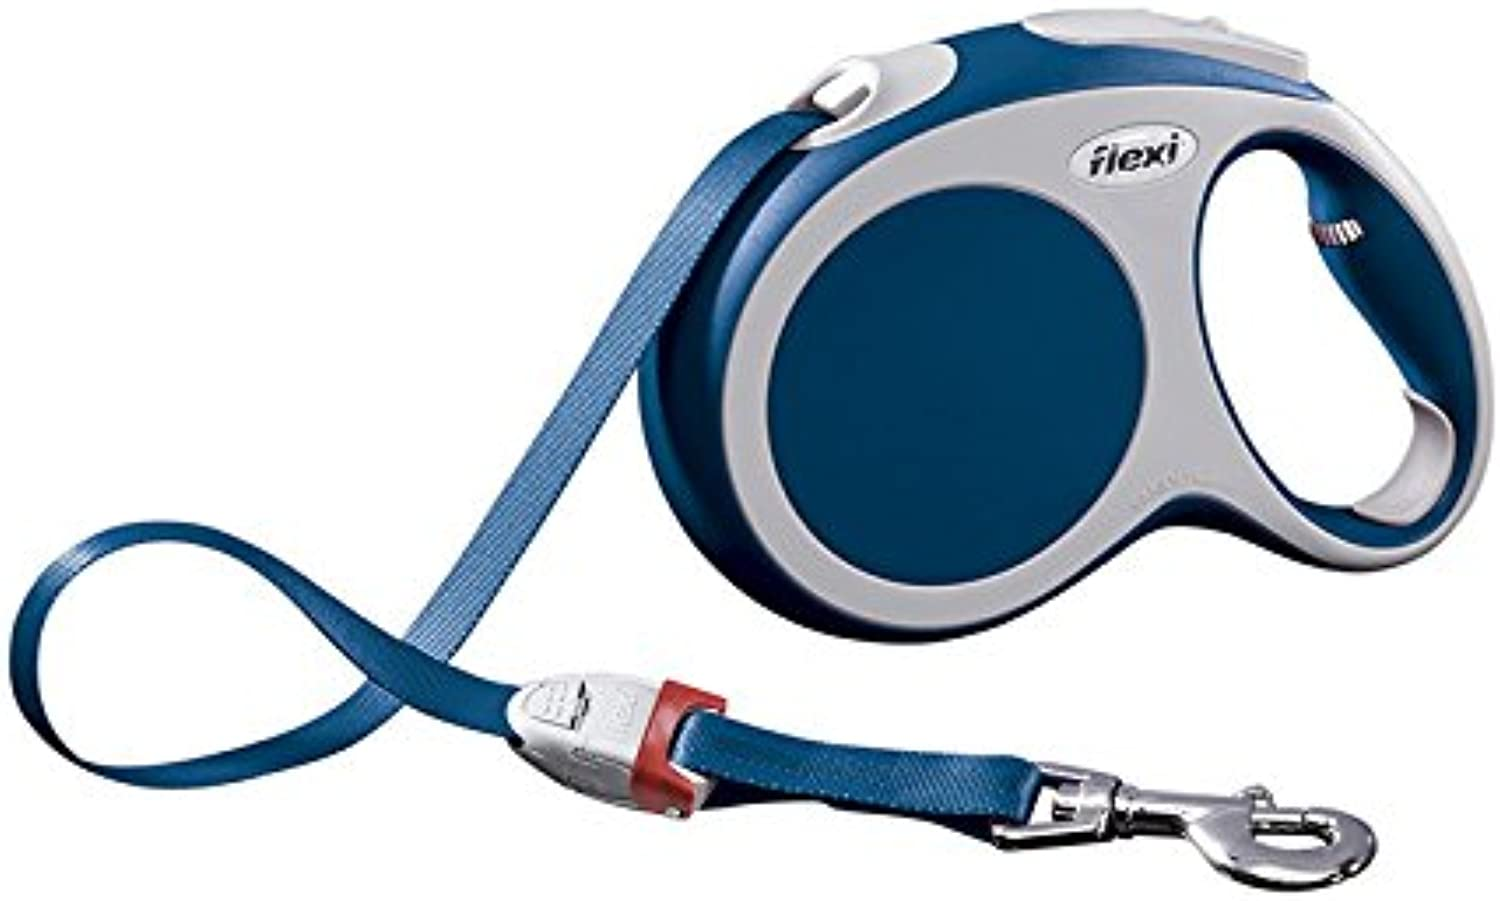 Flexi Vario L  132lbs 16.4  Retractable Pet Leashes  Original From Germany (bluee)